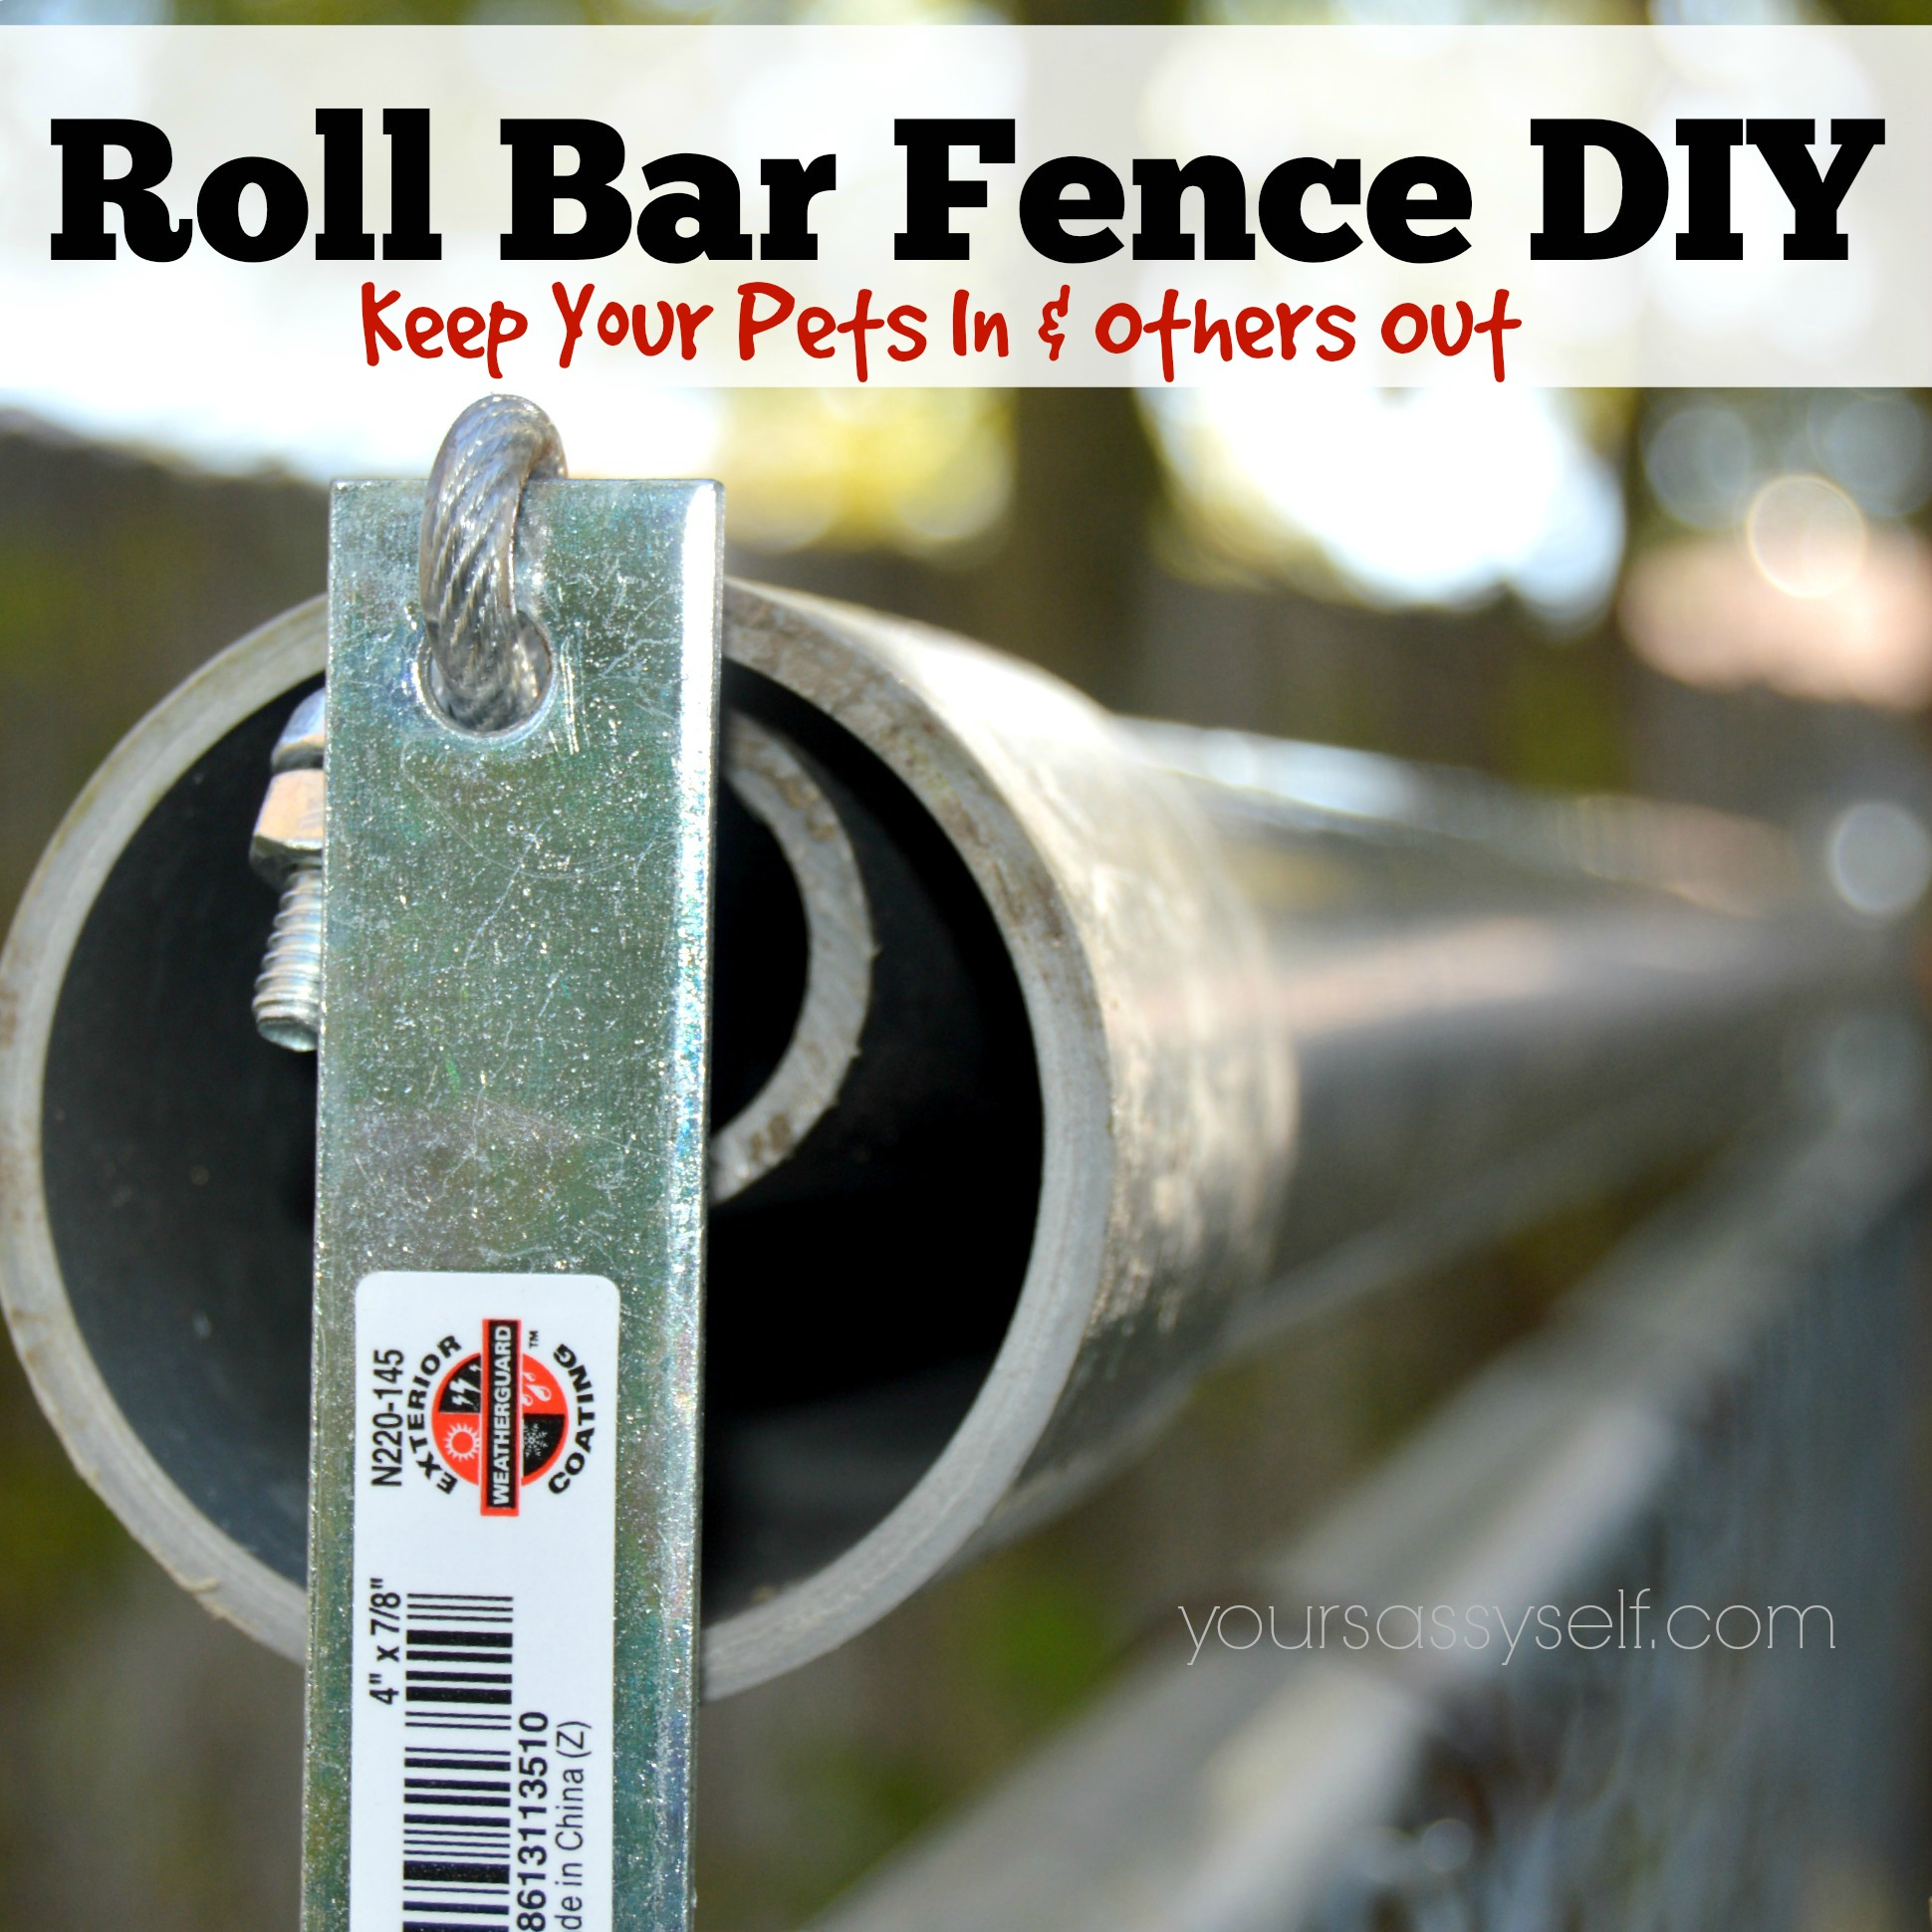 Diy Rolling Fence Gate Roll Bar Fence Diy Keep Your Pets In Others Out Your Sassy Self